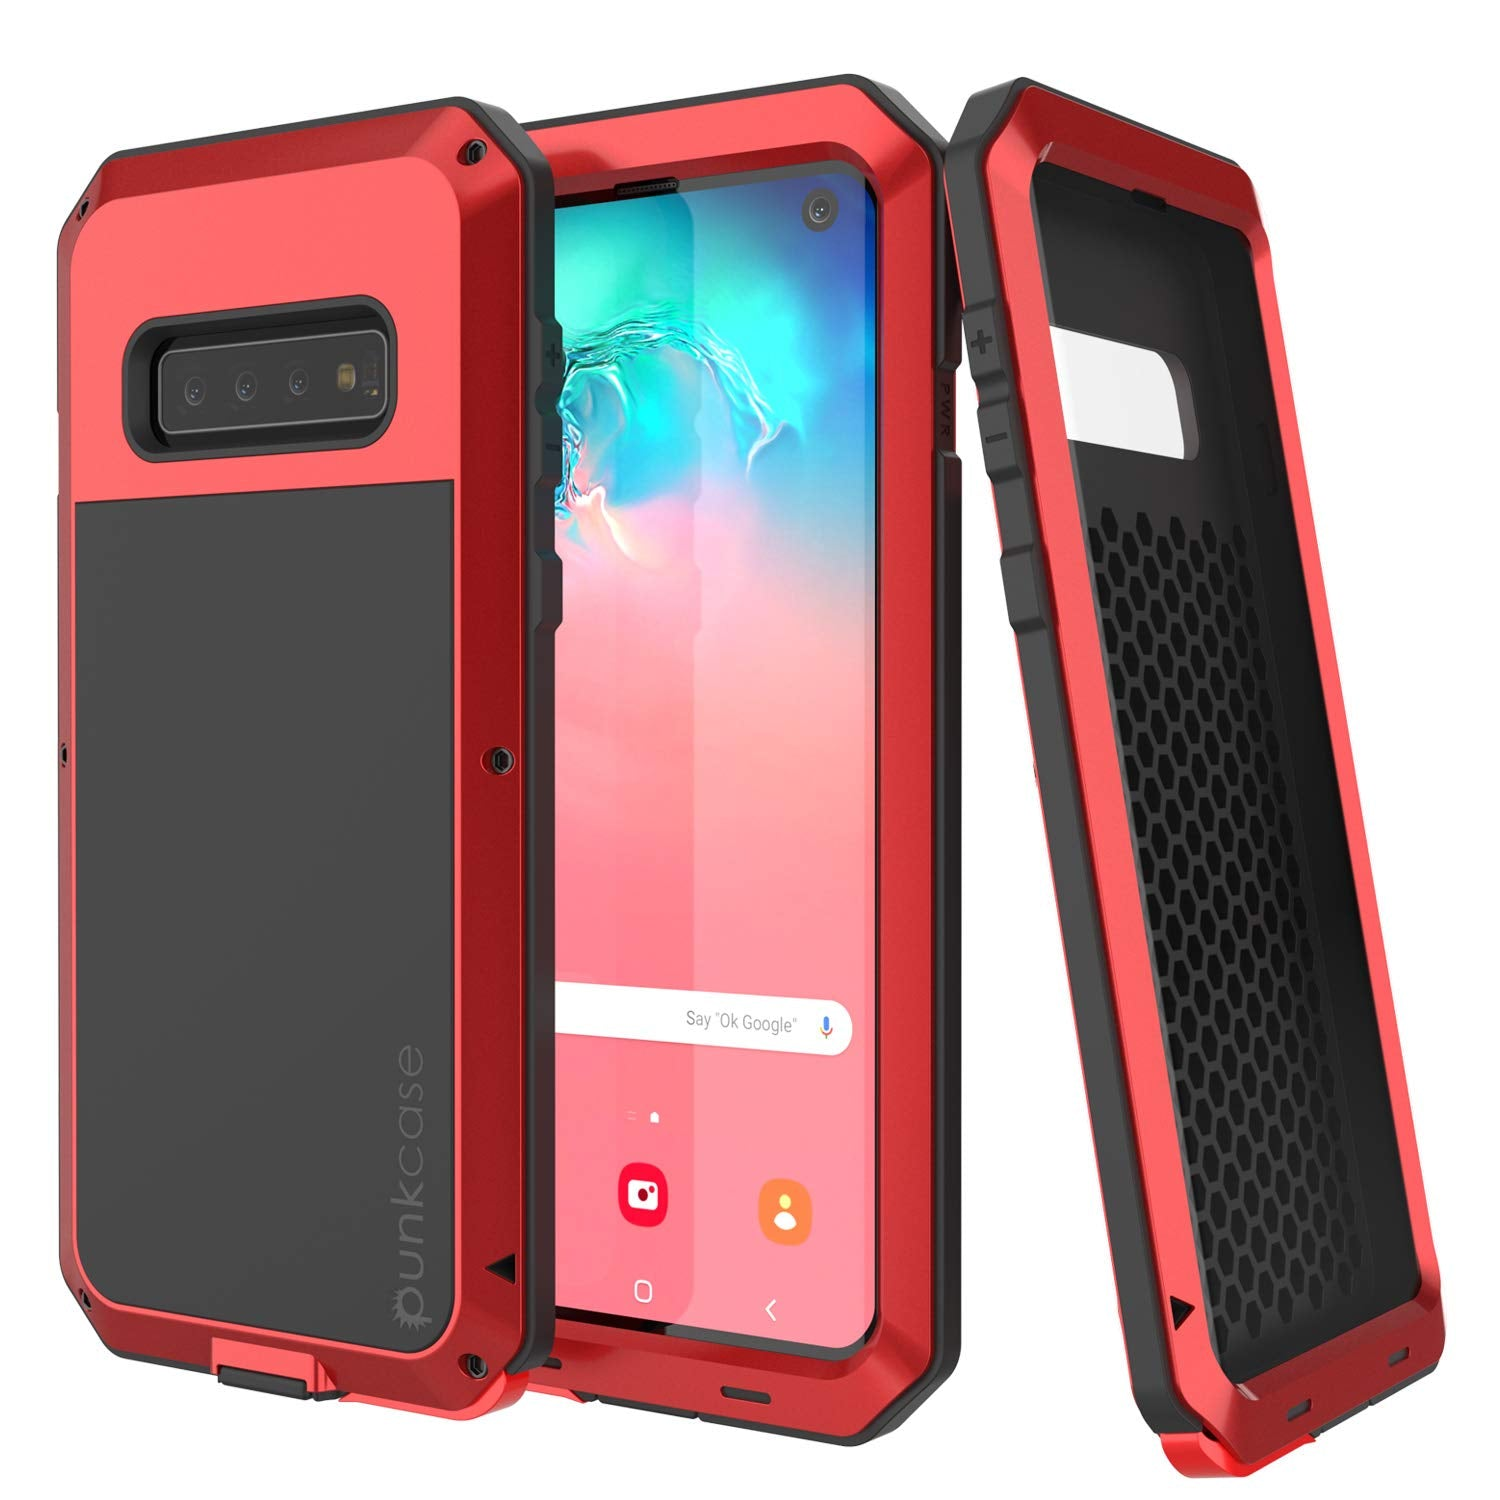 Galaxy S10 Metal Case, Heavy Duty Military Grade Rugged Armor Cover [Red]